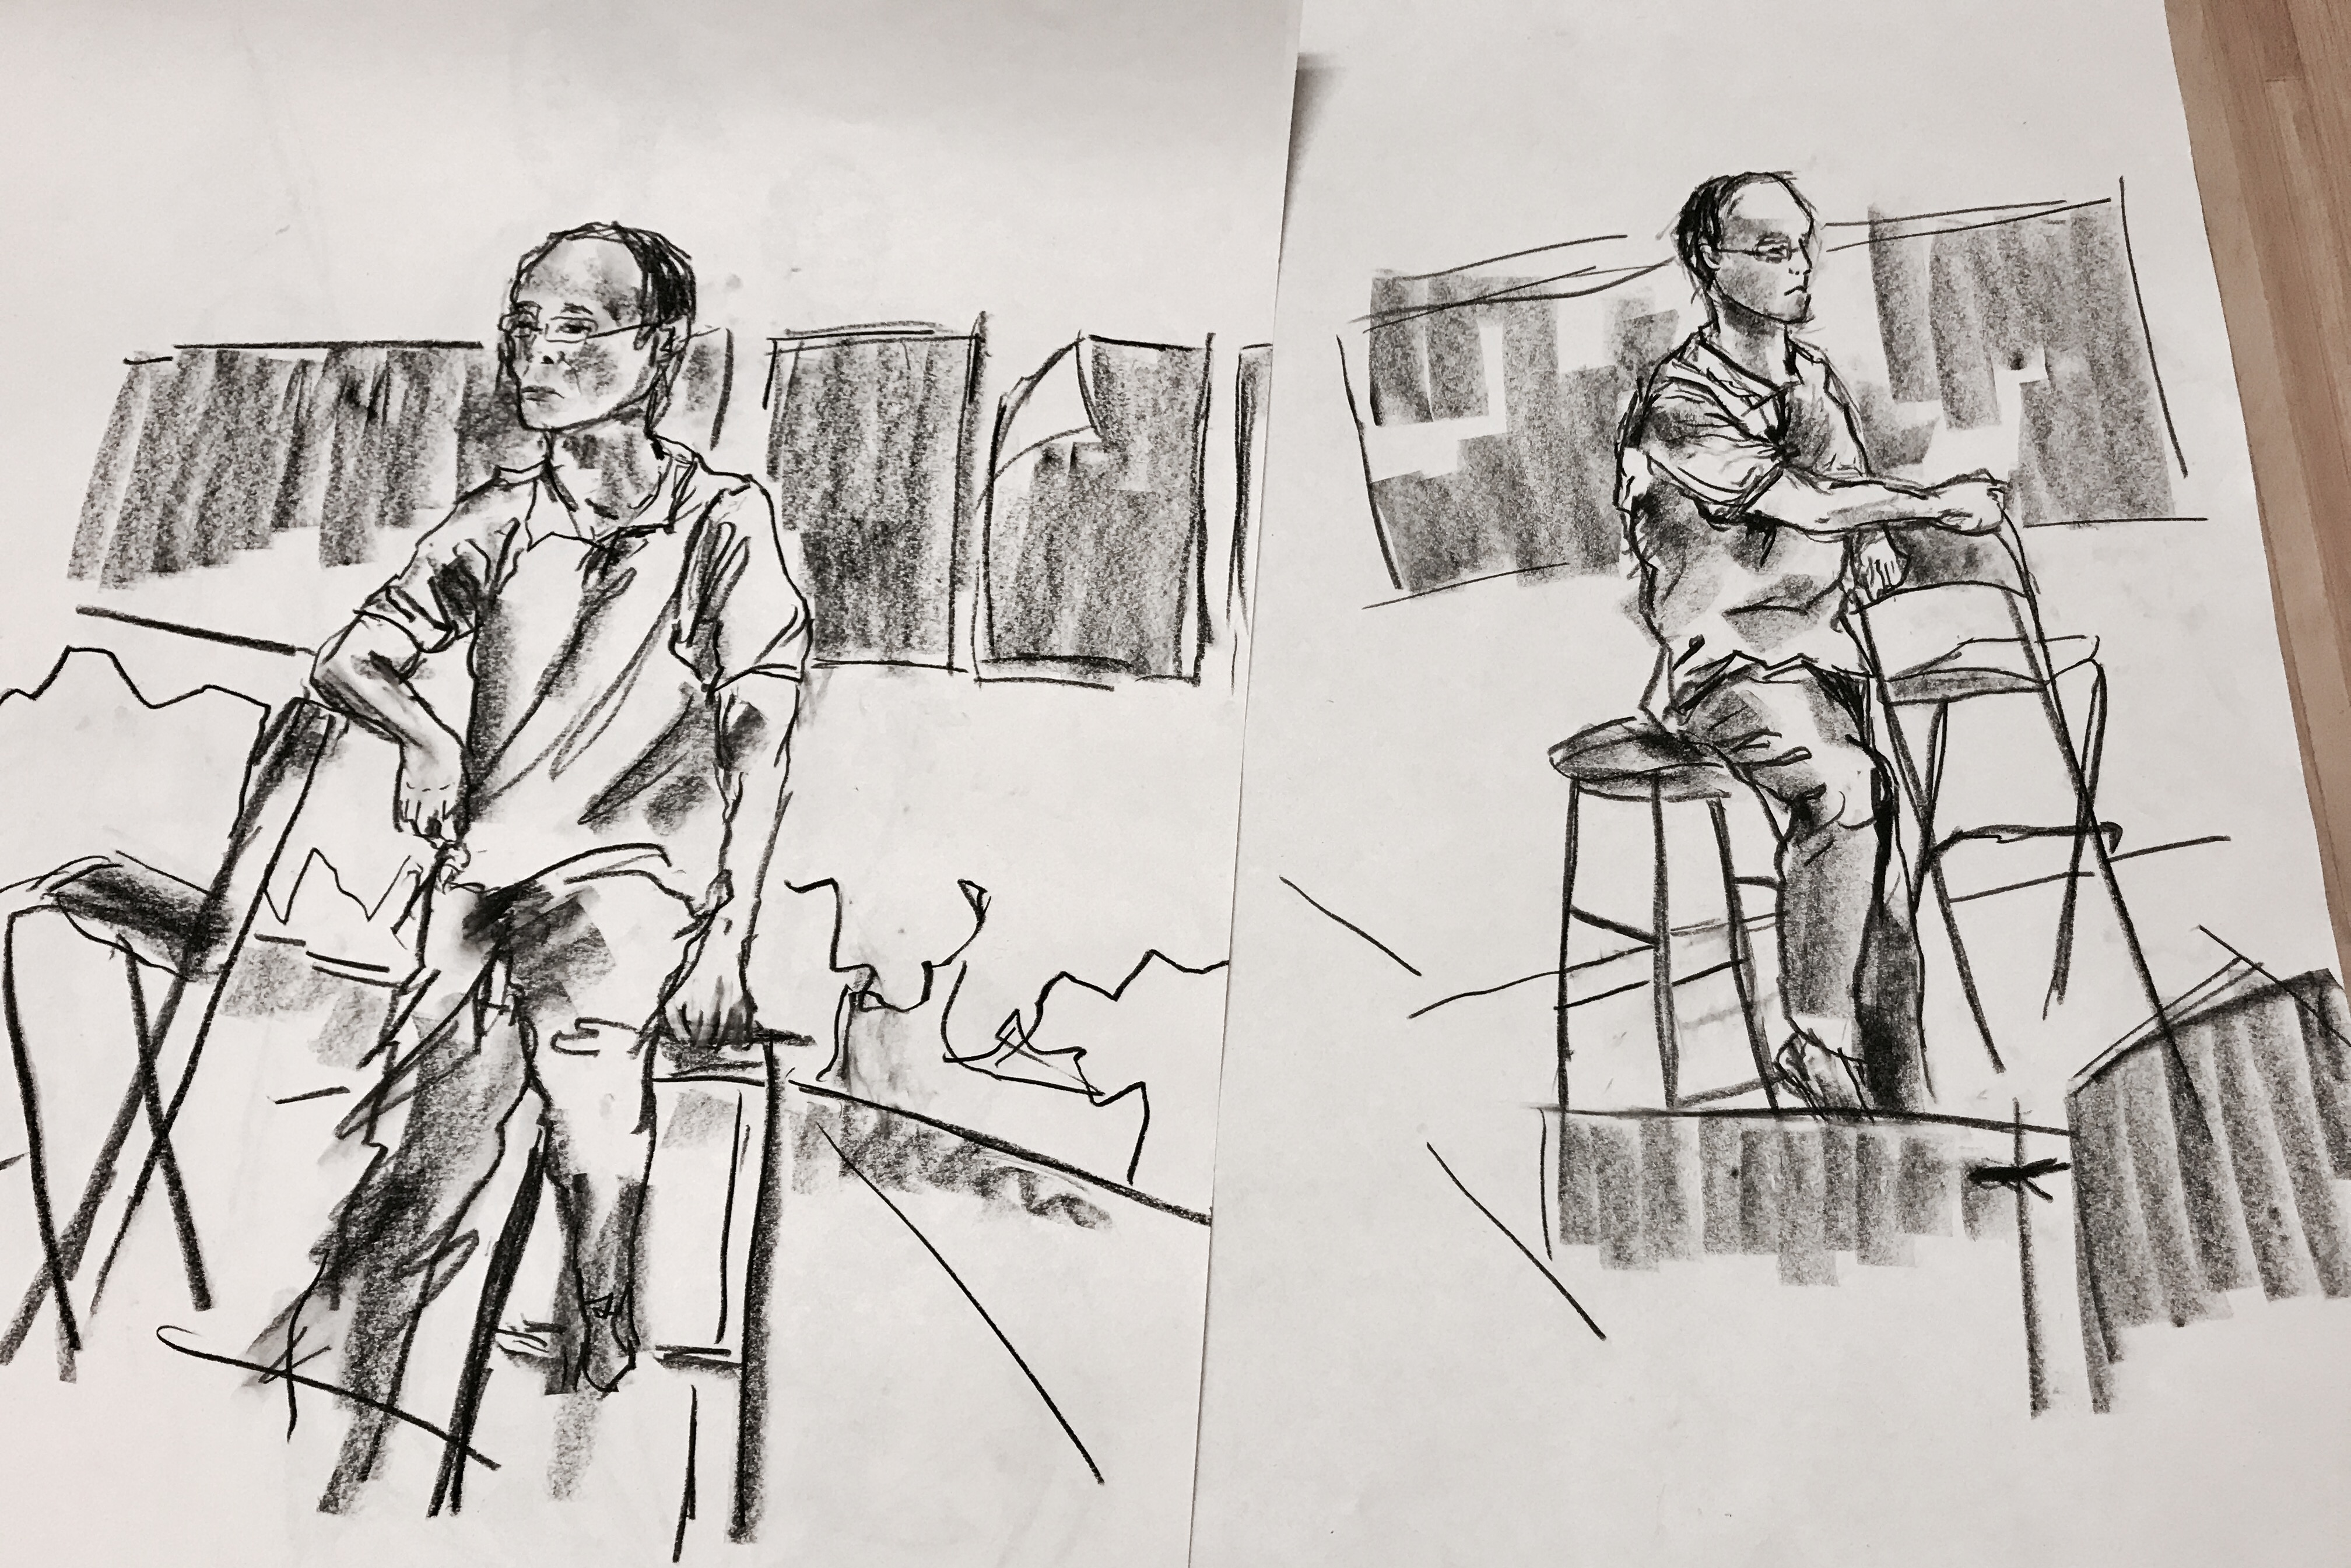 Foundation Drawing: Sketches